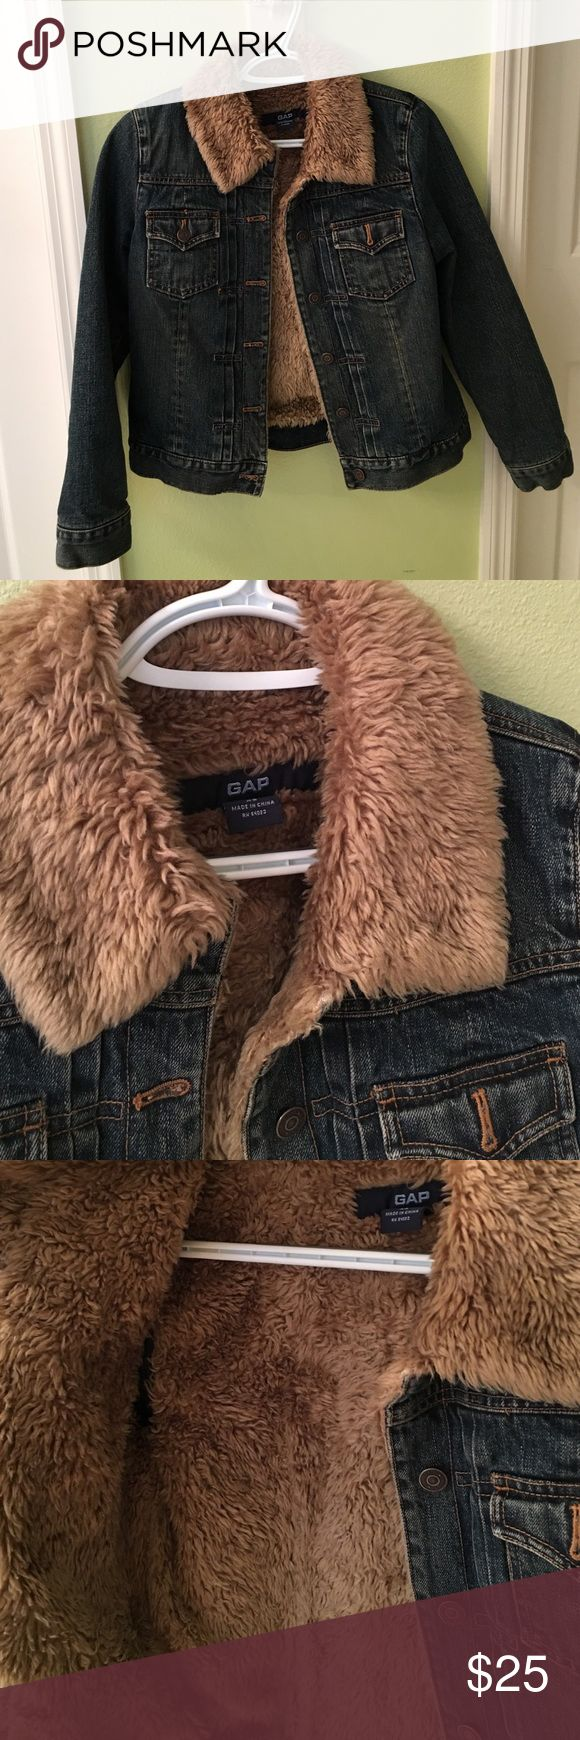 Gap Jean jacket lined with fur Super comfortable and warm Gap jacket. Only worn about twice due to the fact that I live in FL. Excellent condition and adorable on! GAP Jackets & Coats Jean Jackets